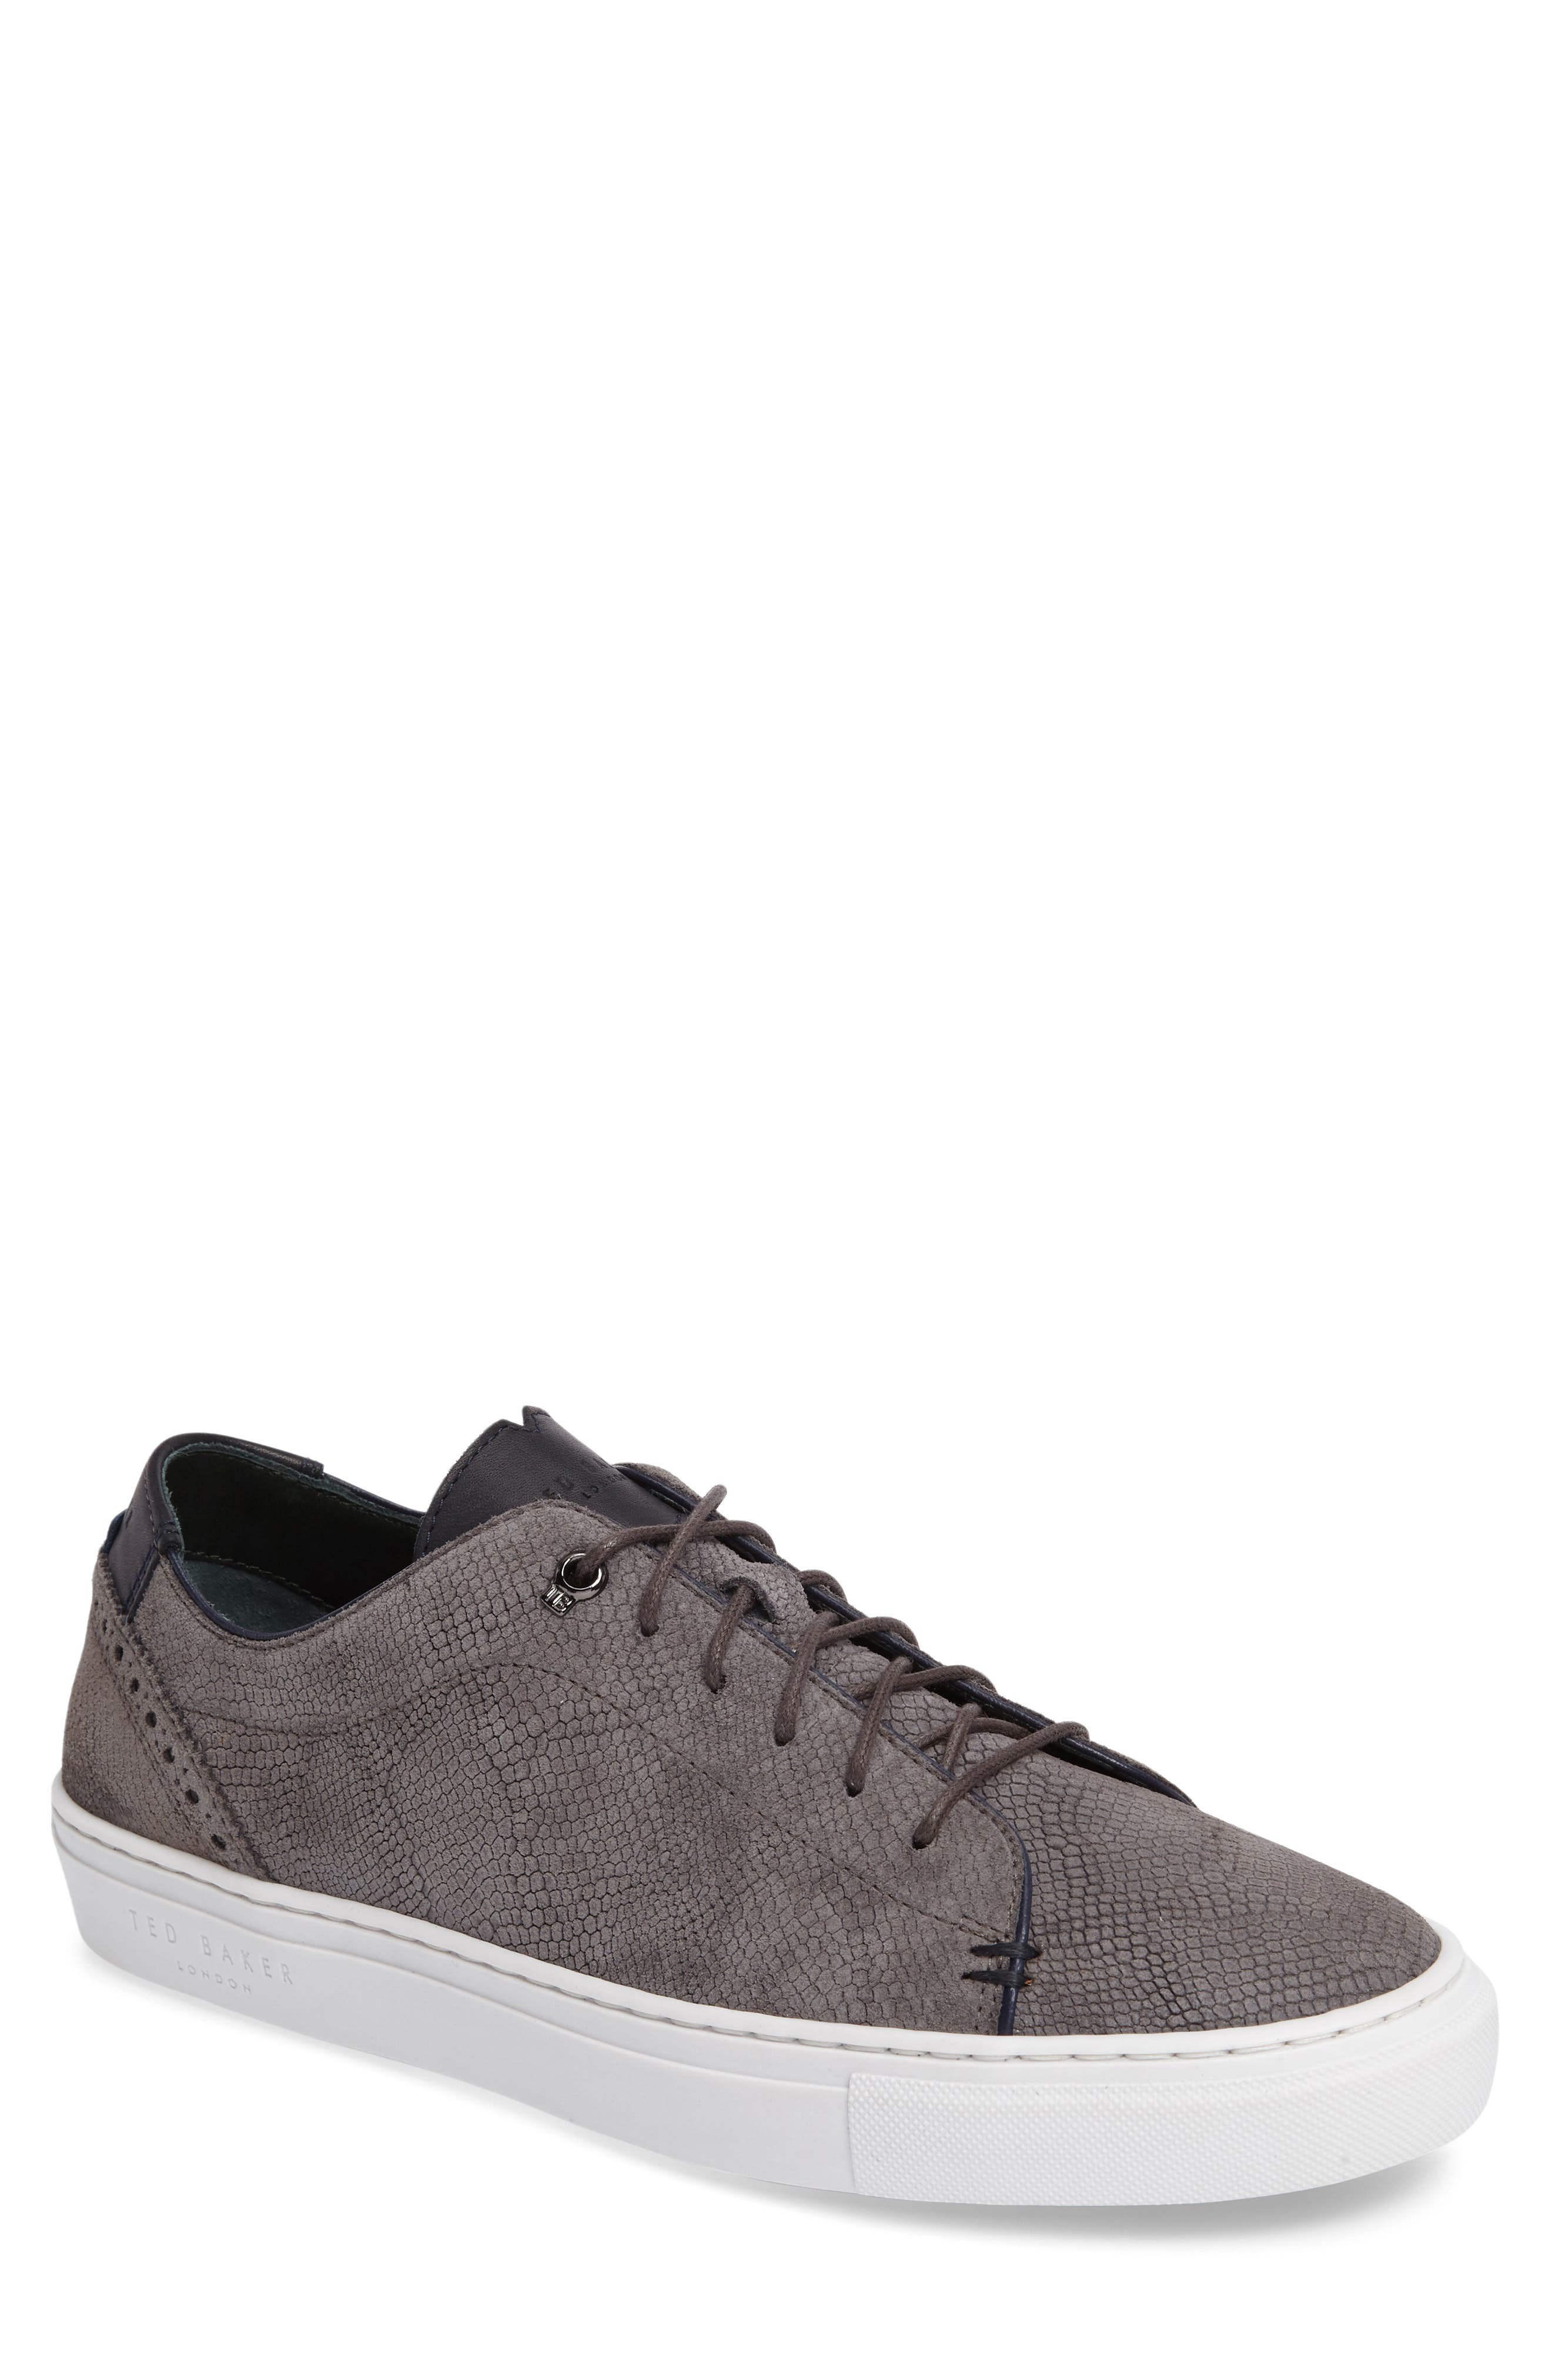 Duke Snake Embossed Sneaker,                         Main,                         color,